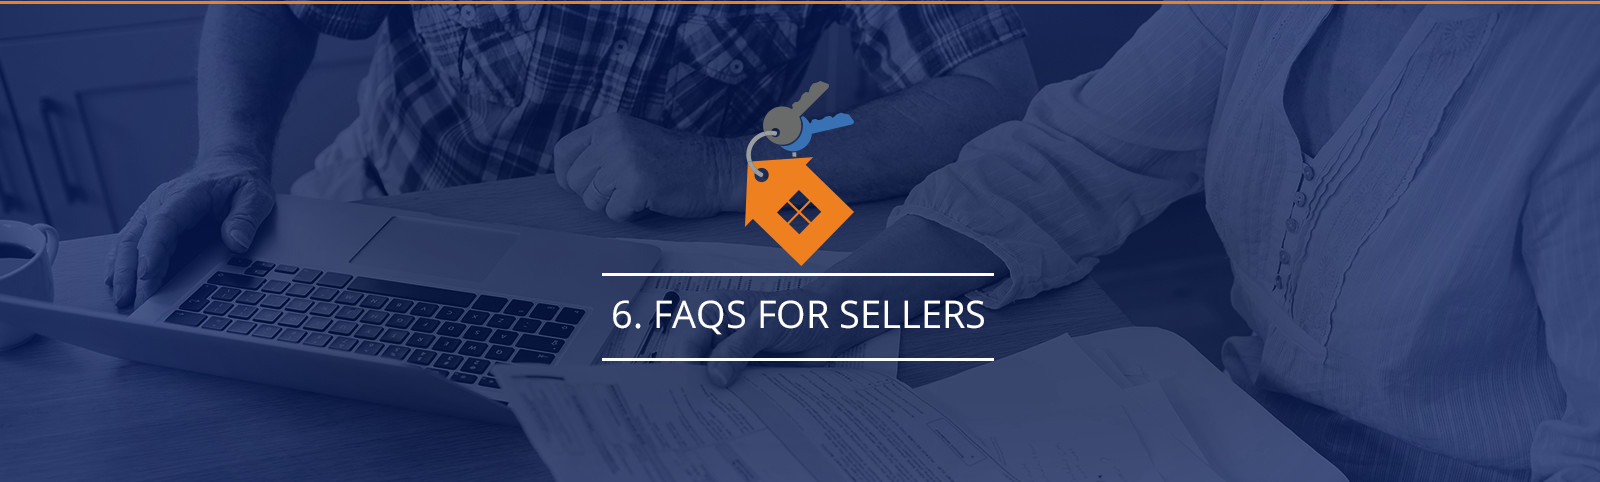 faqs for sellers